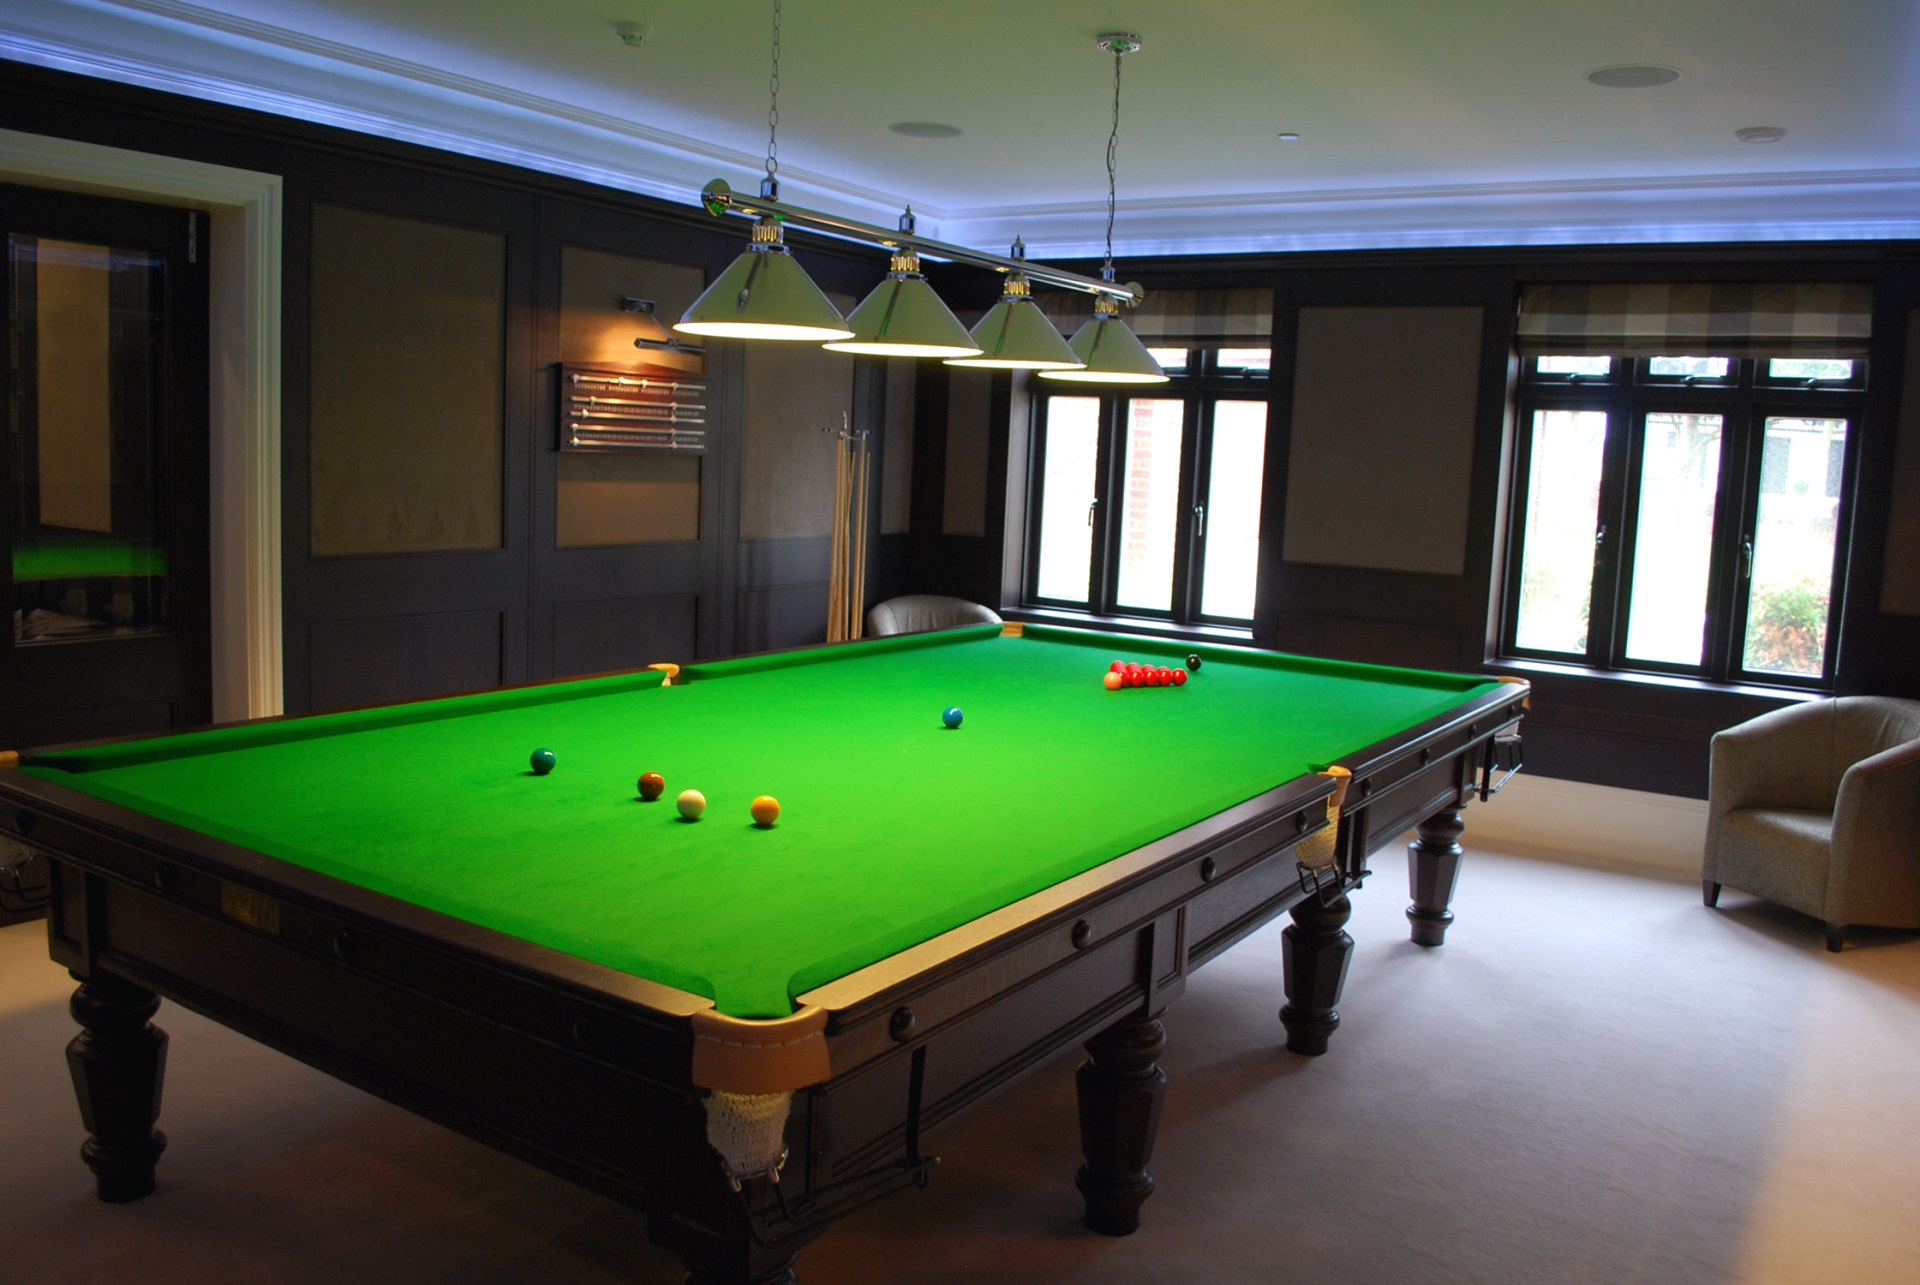 Pool wallpapers pictures images - Pool table images ...